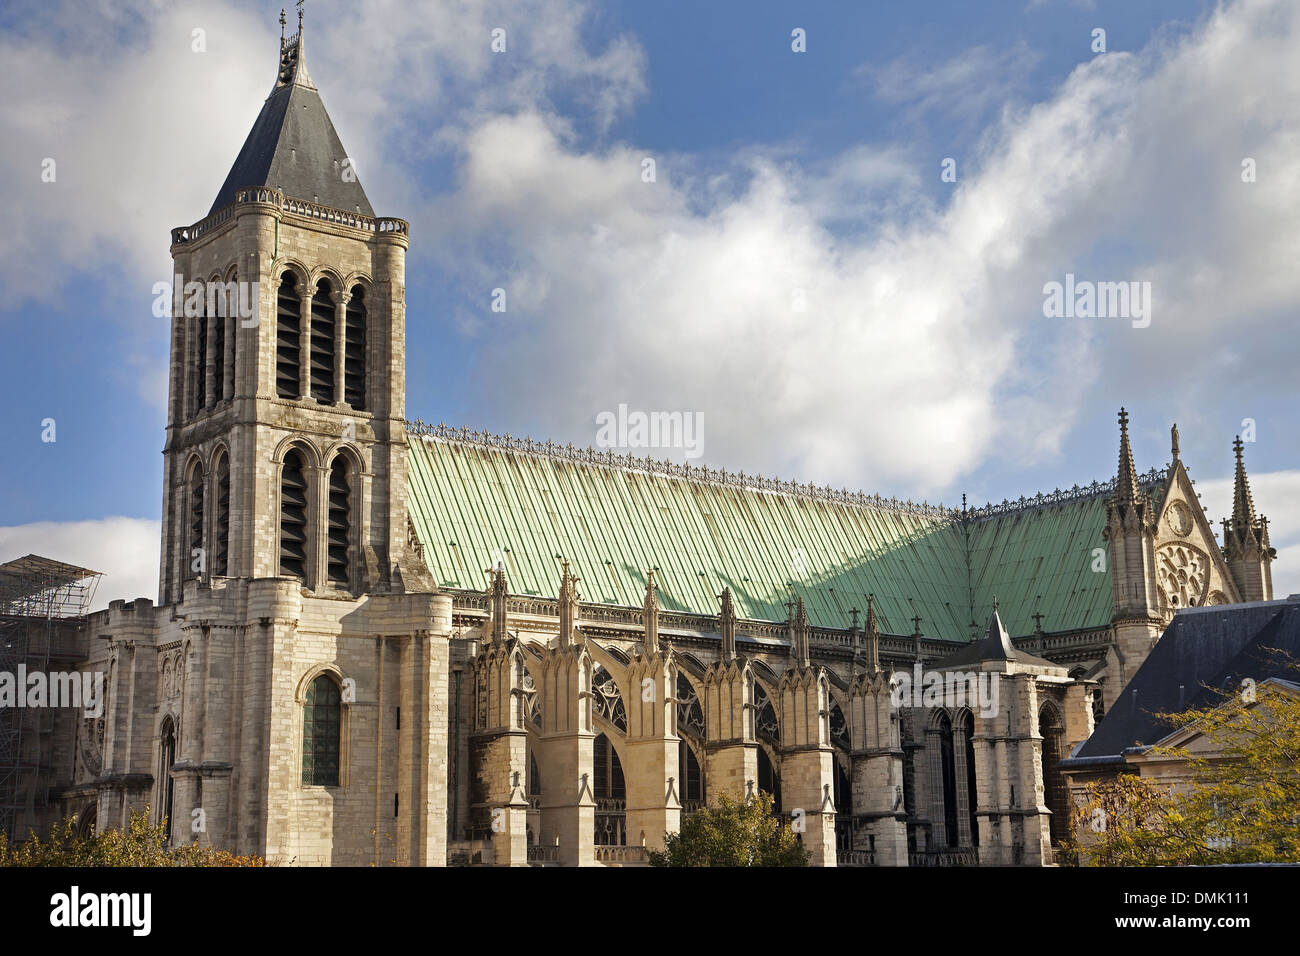 BASILICA OF SAINT DENIS, RELIGIOUS EDIFICE IN GOTHIC STYLE REBUILT IN THE 12TH CENTURY BY THE ABBOT SUGER, CEMETERY FOR THE KINGS OF FRANCE, LISTED AS A HISTORICAL MONUMENT, SAINT-DENIS, SEINE-SAINT-DENIS (93), FRANCE - Stock Image